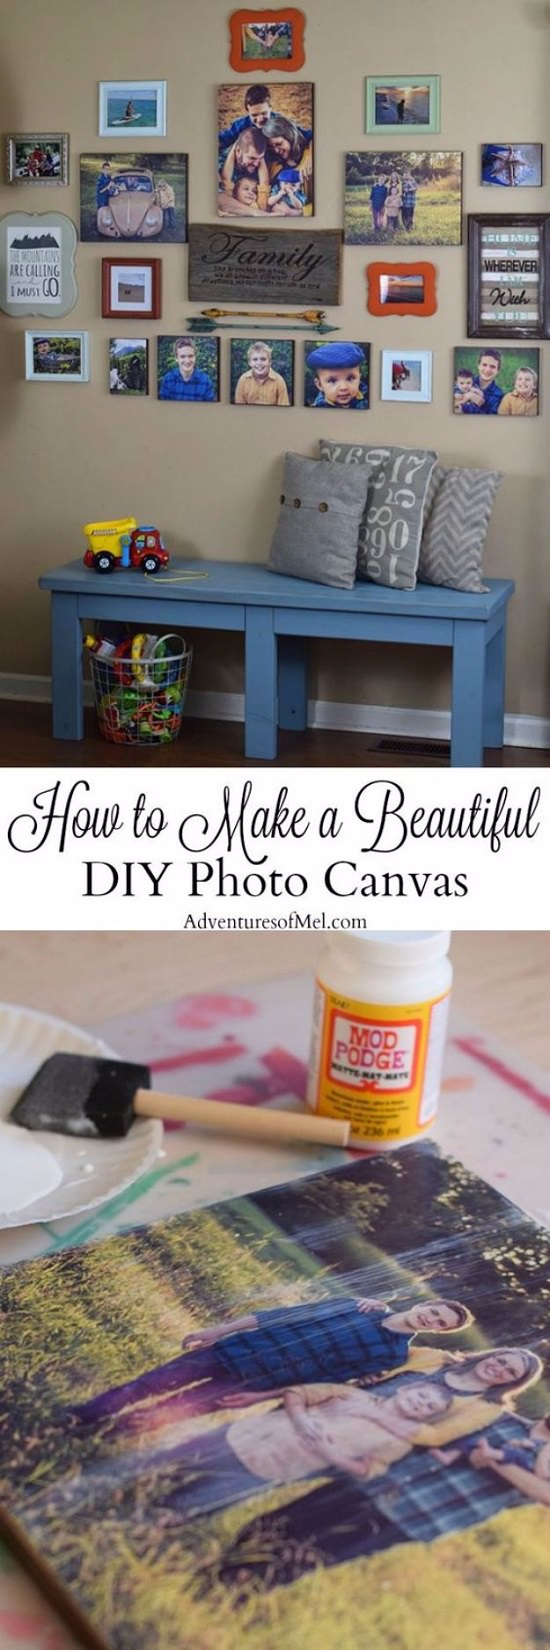 photo canvas craft using mod podge